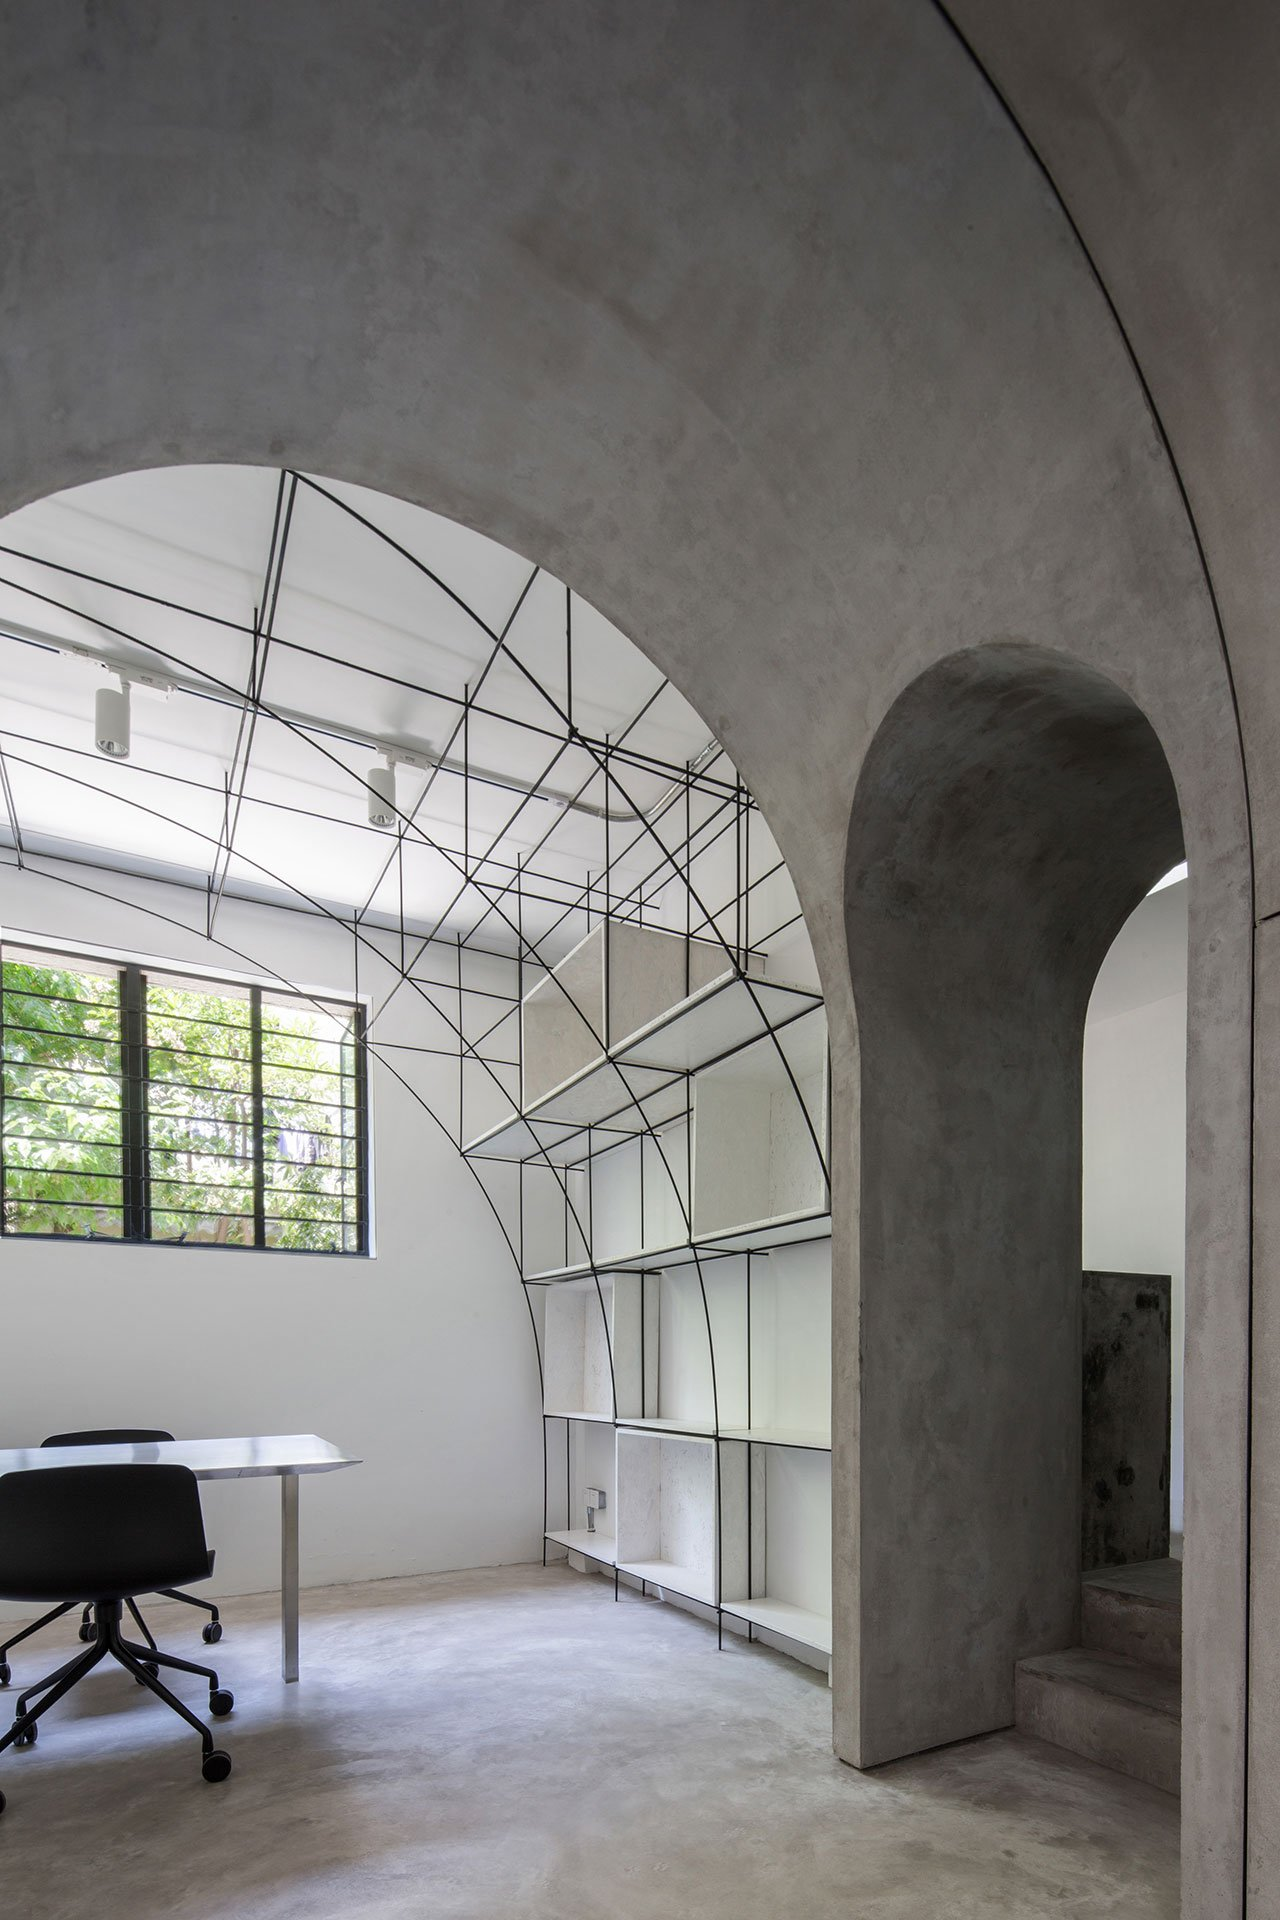 Arched door between the meeting room and the model room. Photo by Qiu Ripei.